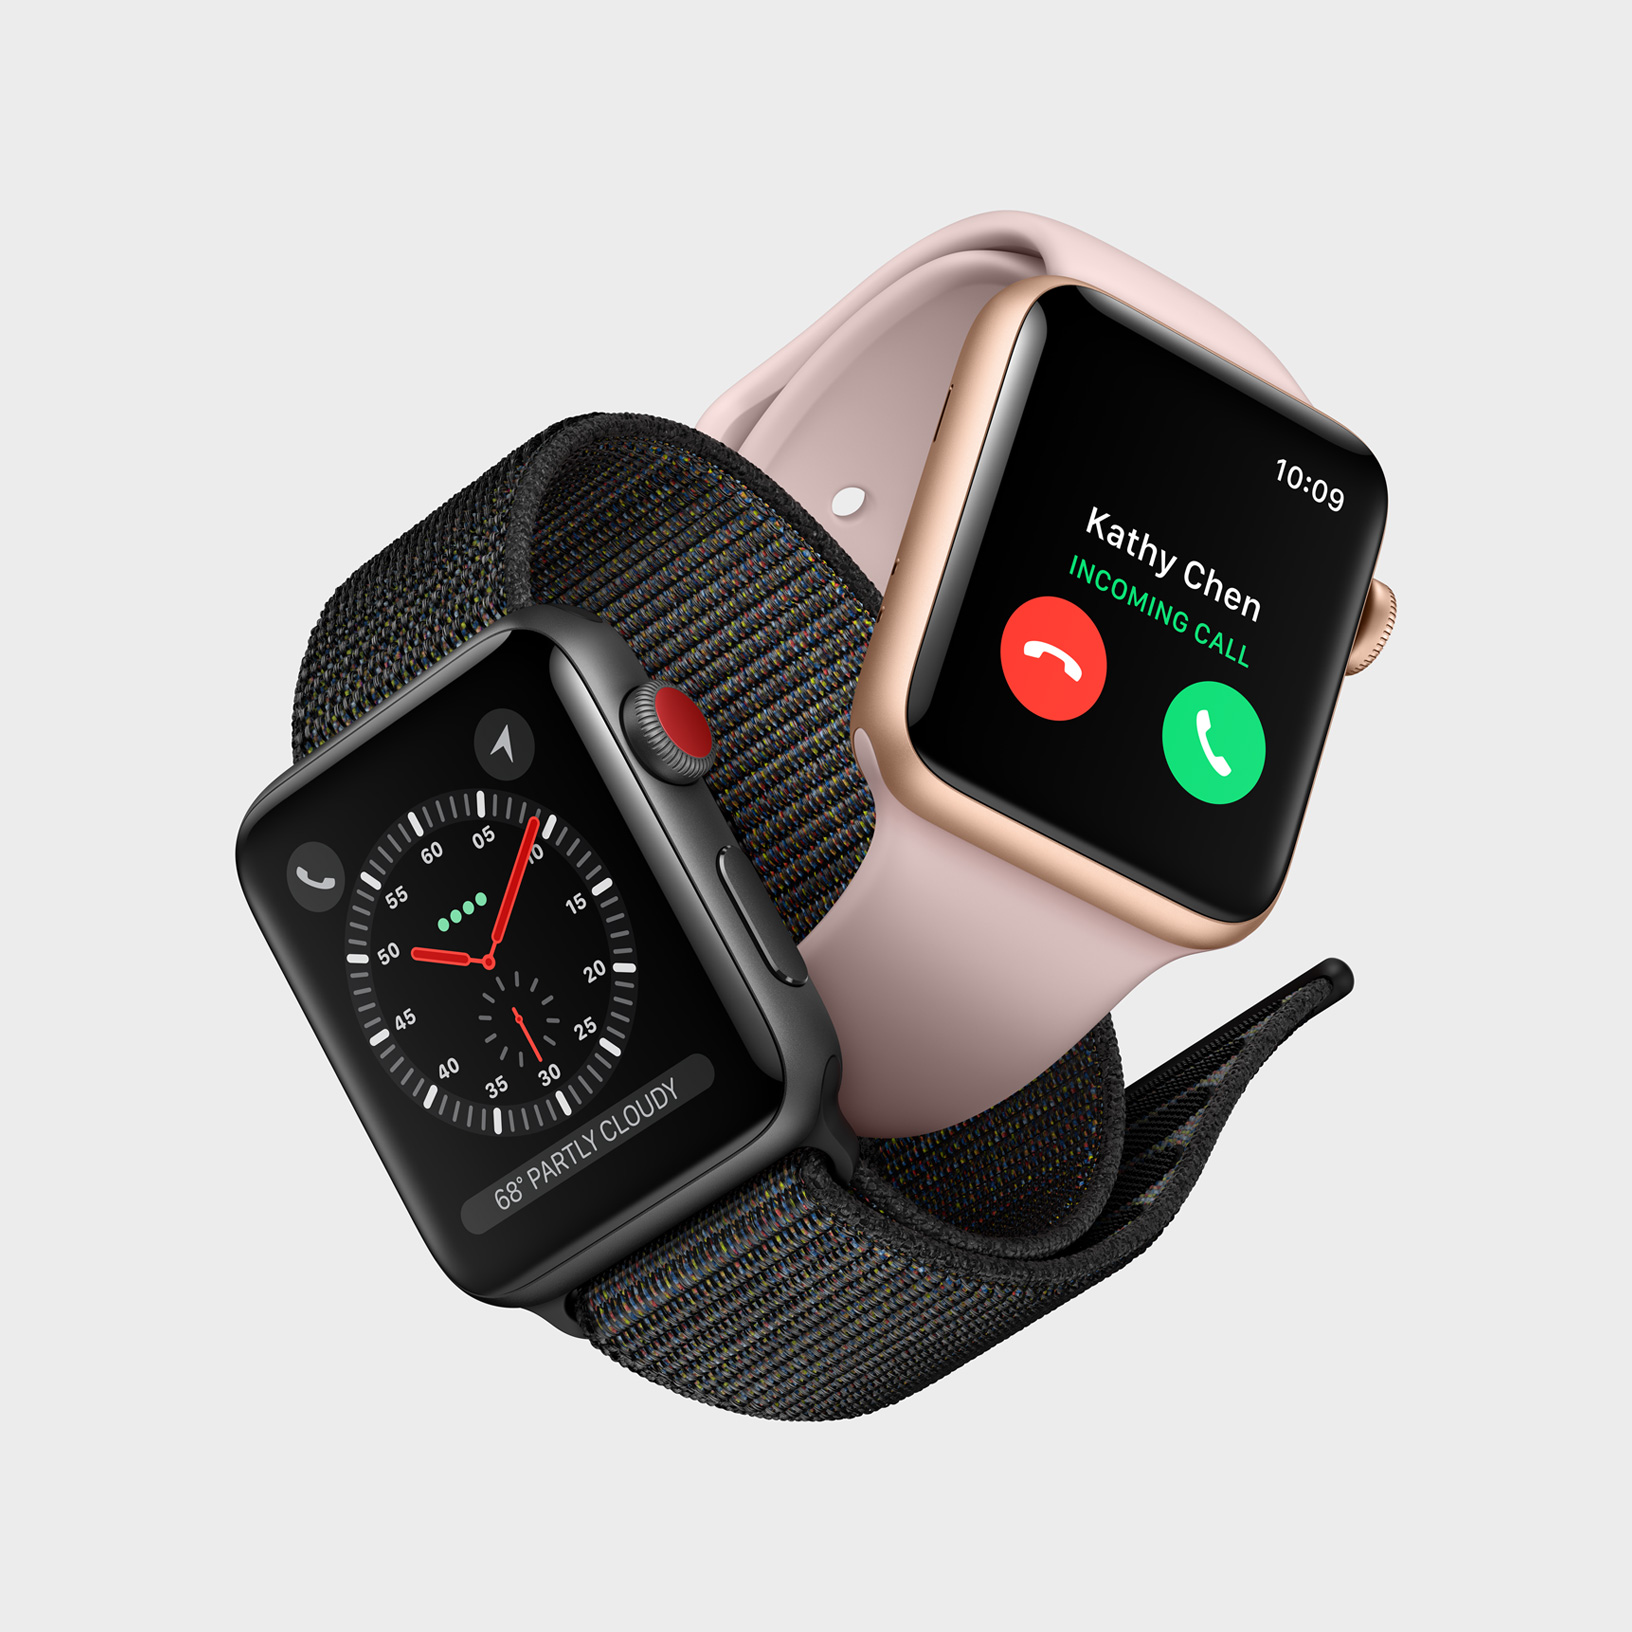 Some Apple Watch Series 3 Owners Reporting Crashes After watchOS 7 Update